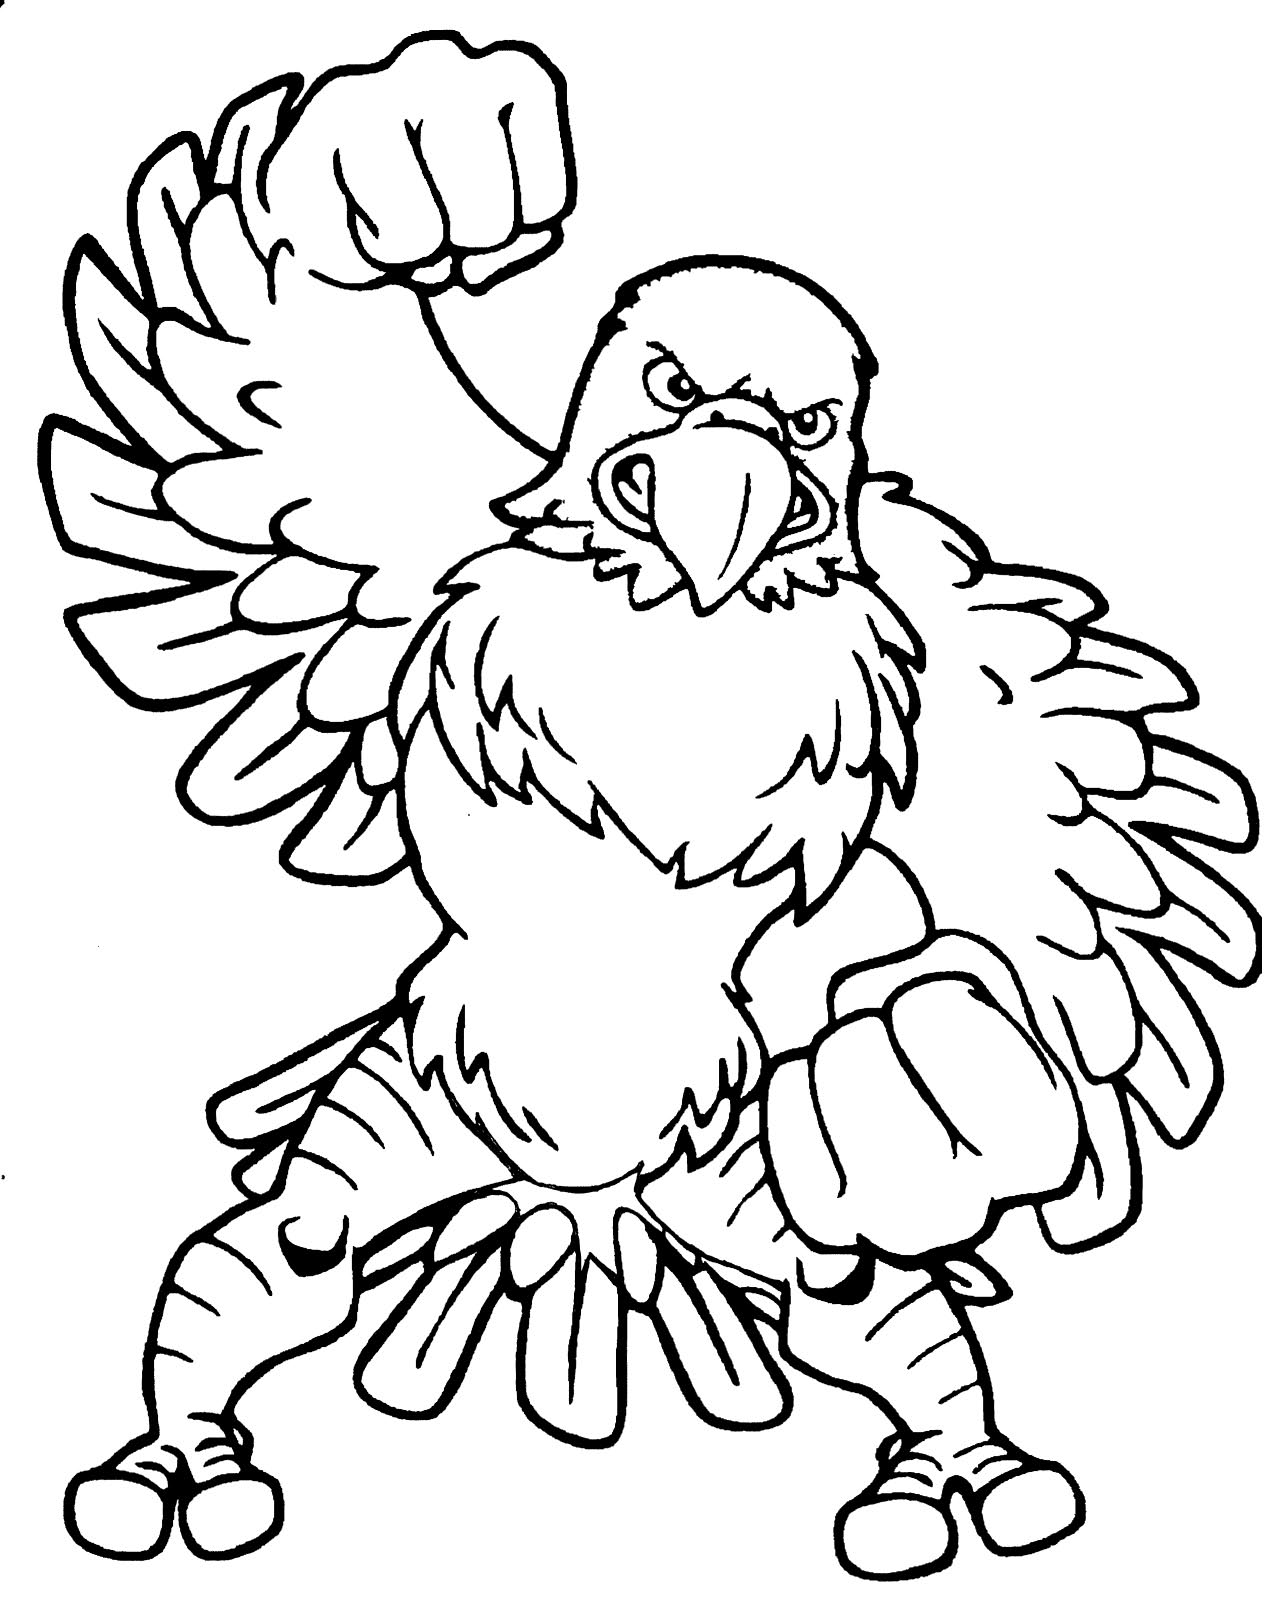 Eagle Mascot Clipart Free Cliparts That You Can Download To You